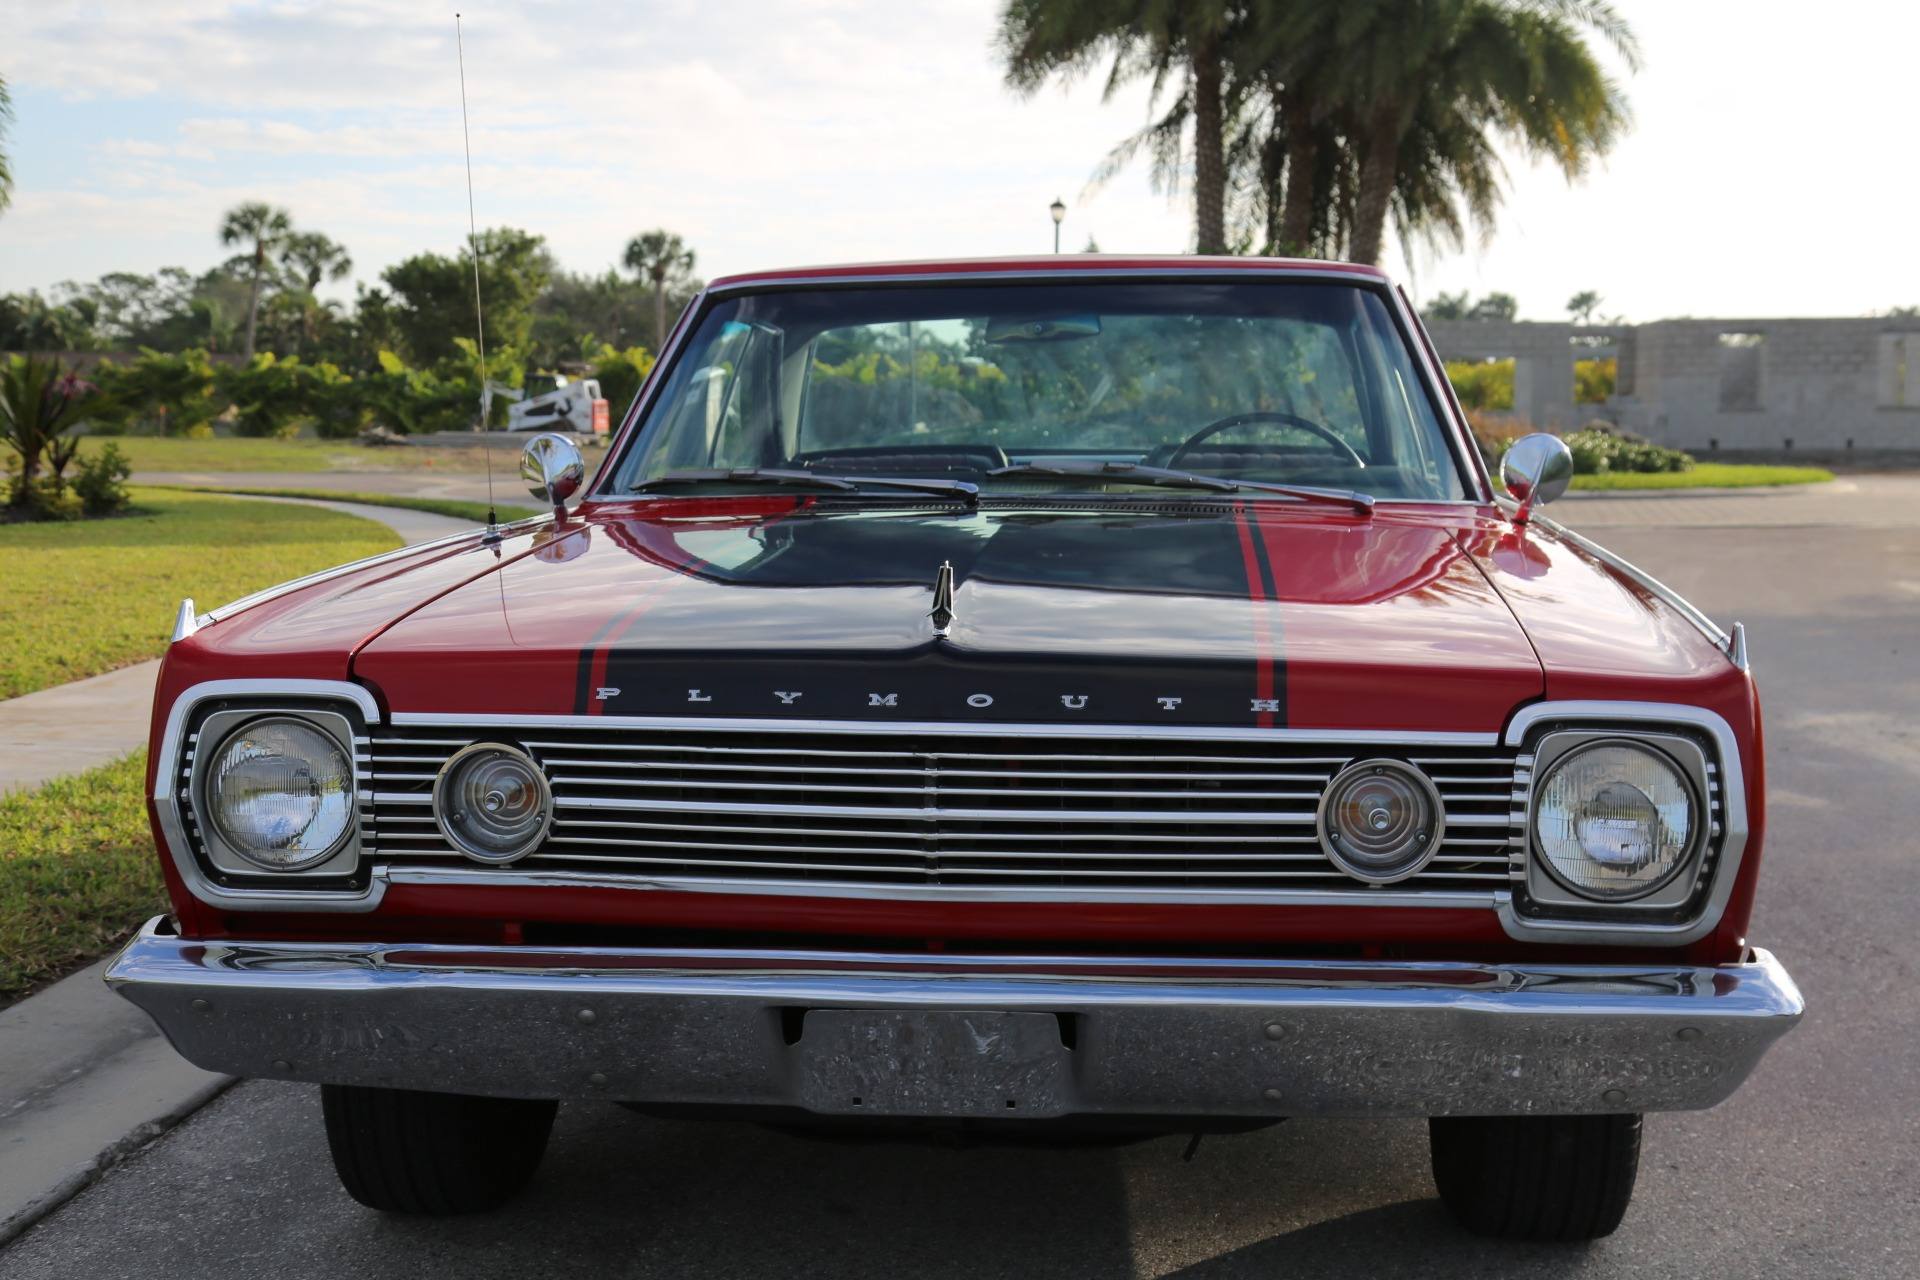 Used 1966 Plymouth Satellite 440 V8 Automatic for sale Sold at Muscle Cars for Sale Inc. in Fort Myers FL 33912 5